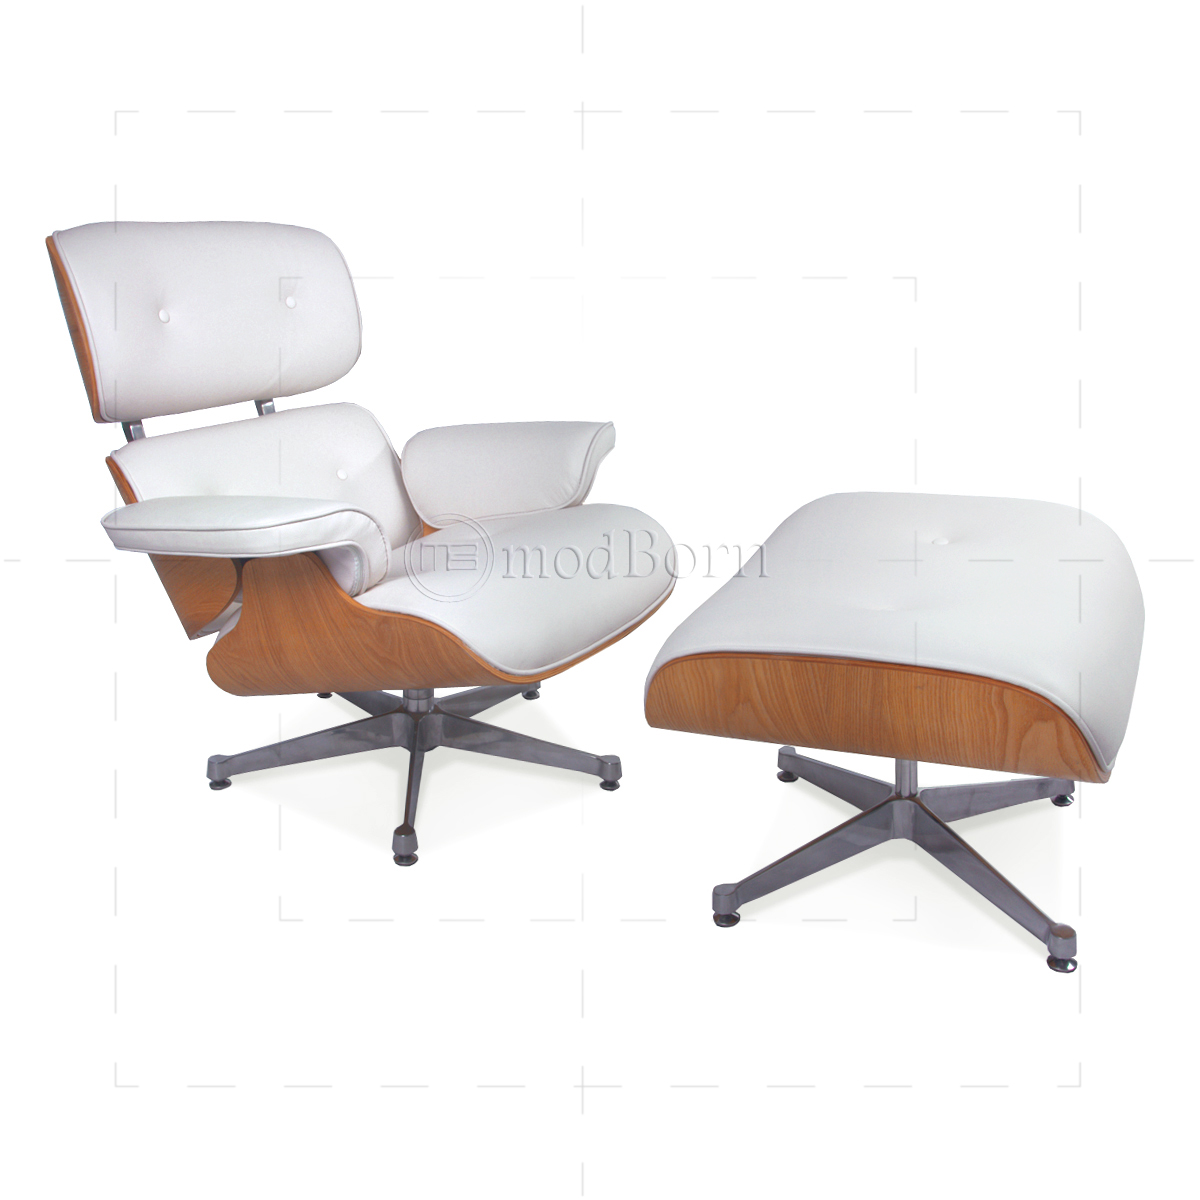 Eames Style Lounge Chair And Ottoman White Leather ASH Plywood   Replica